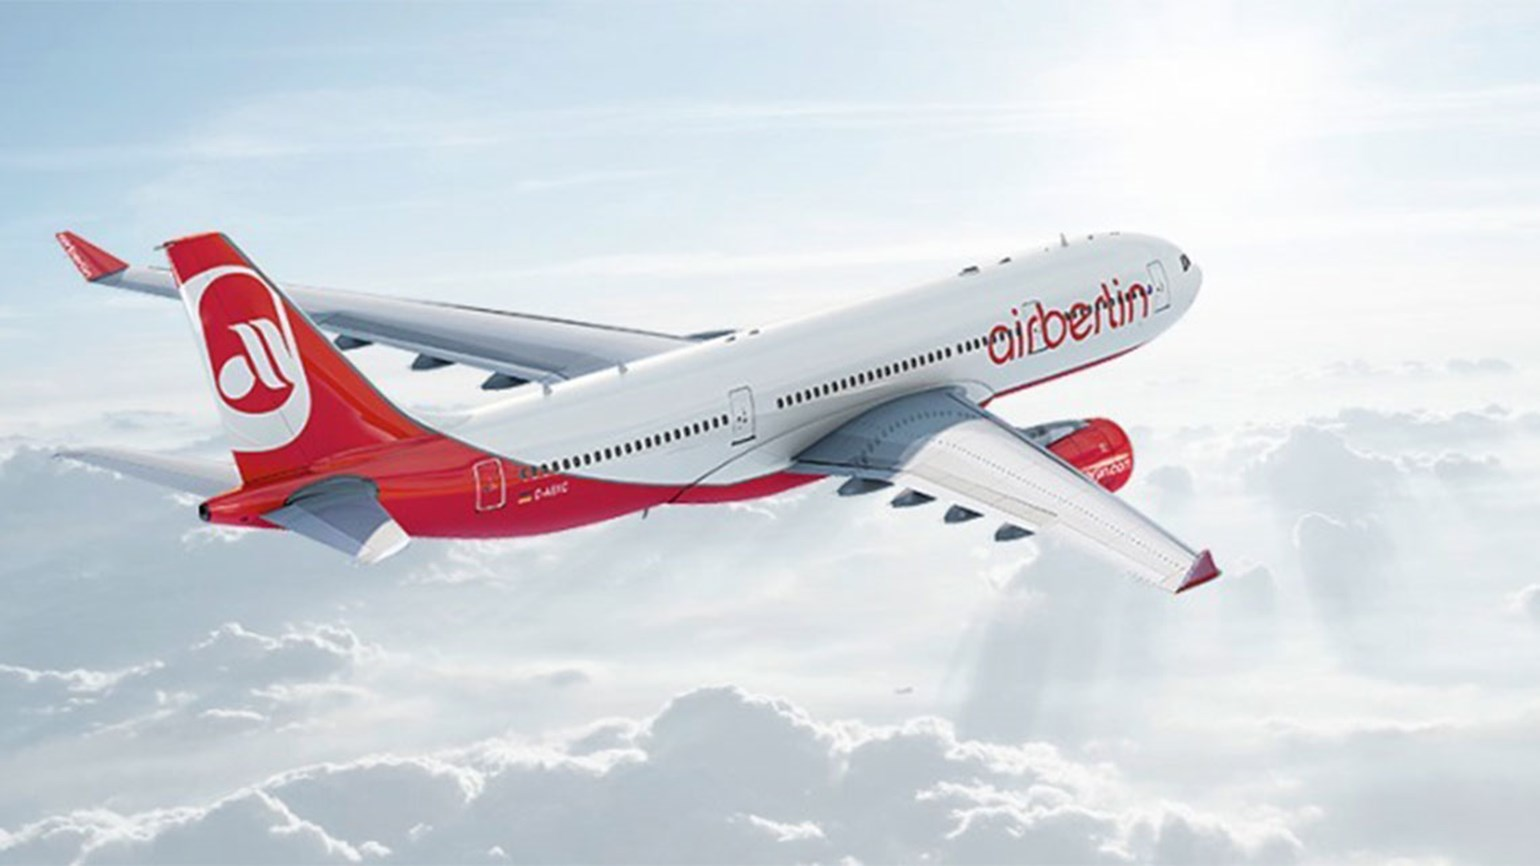 Air Berlin's final U.S. flights to depart Oct. 15